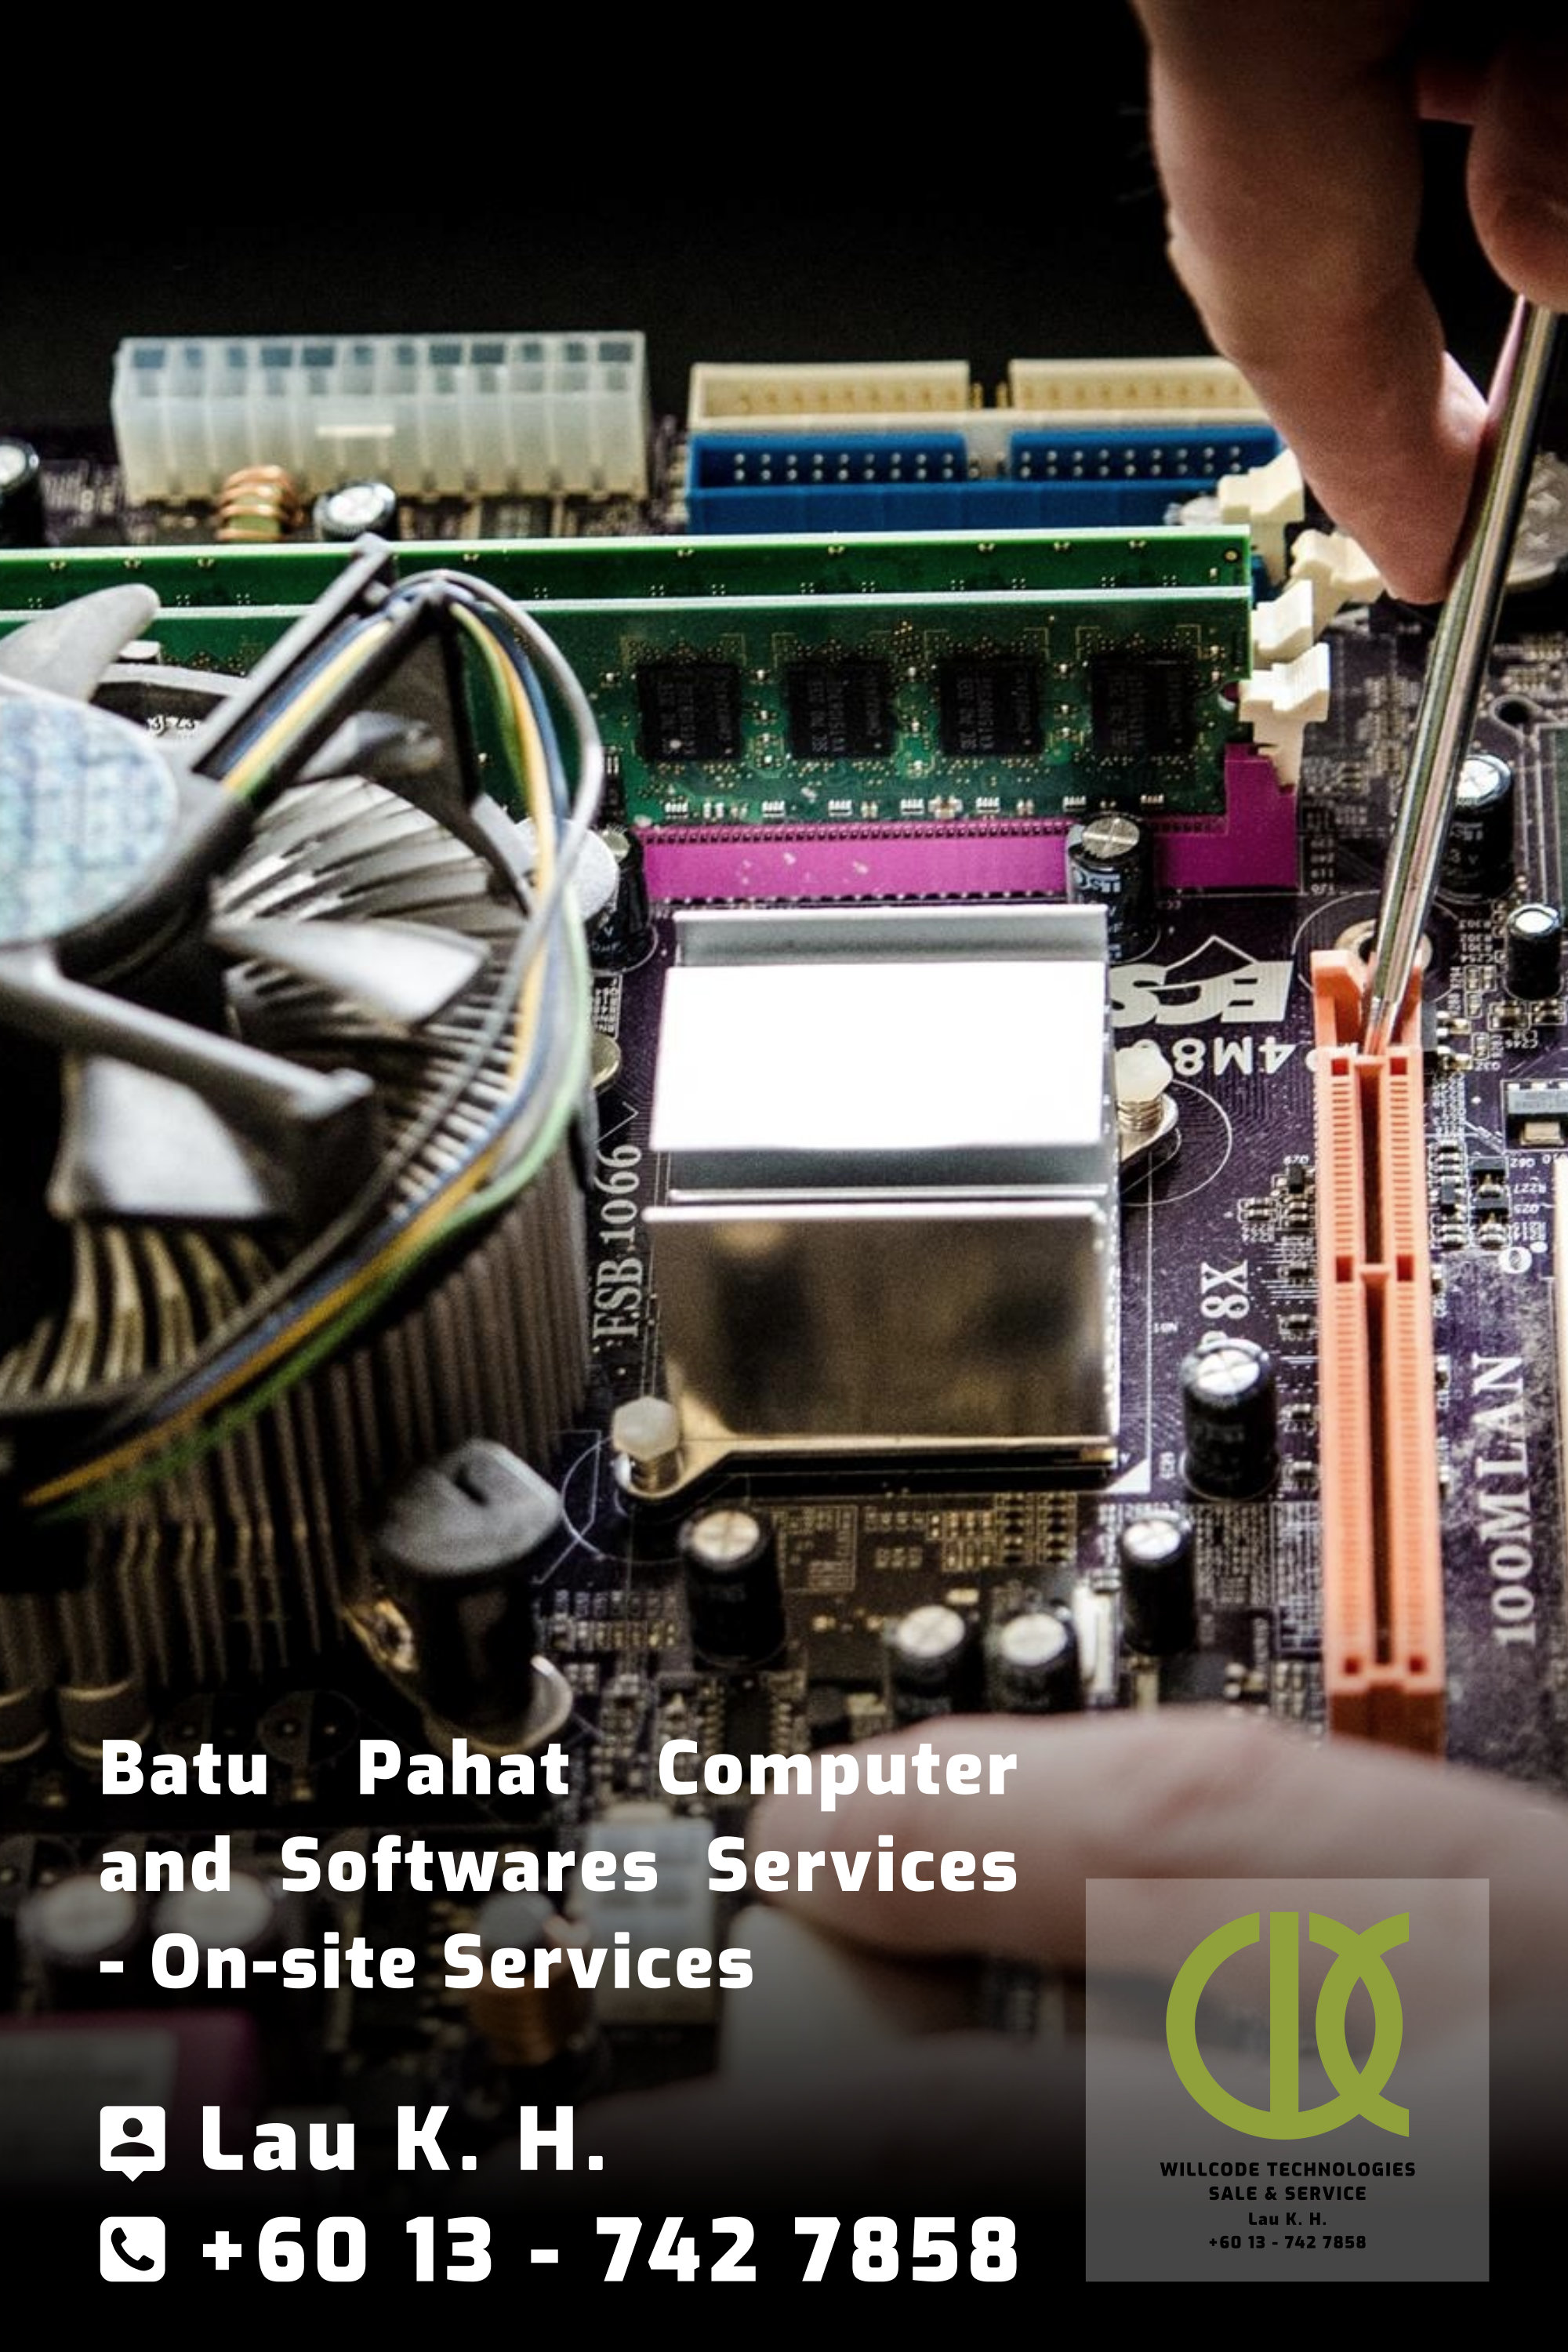 Batu Pahat Computer Services Computer Sales Softwares Services On-site Services Willcode Technologies Sale and Service Logo A03